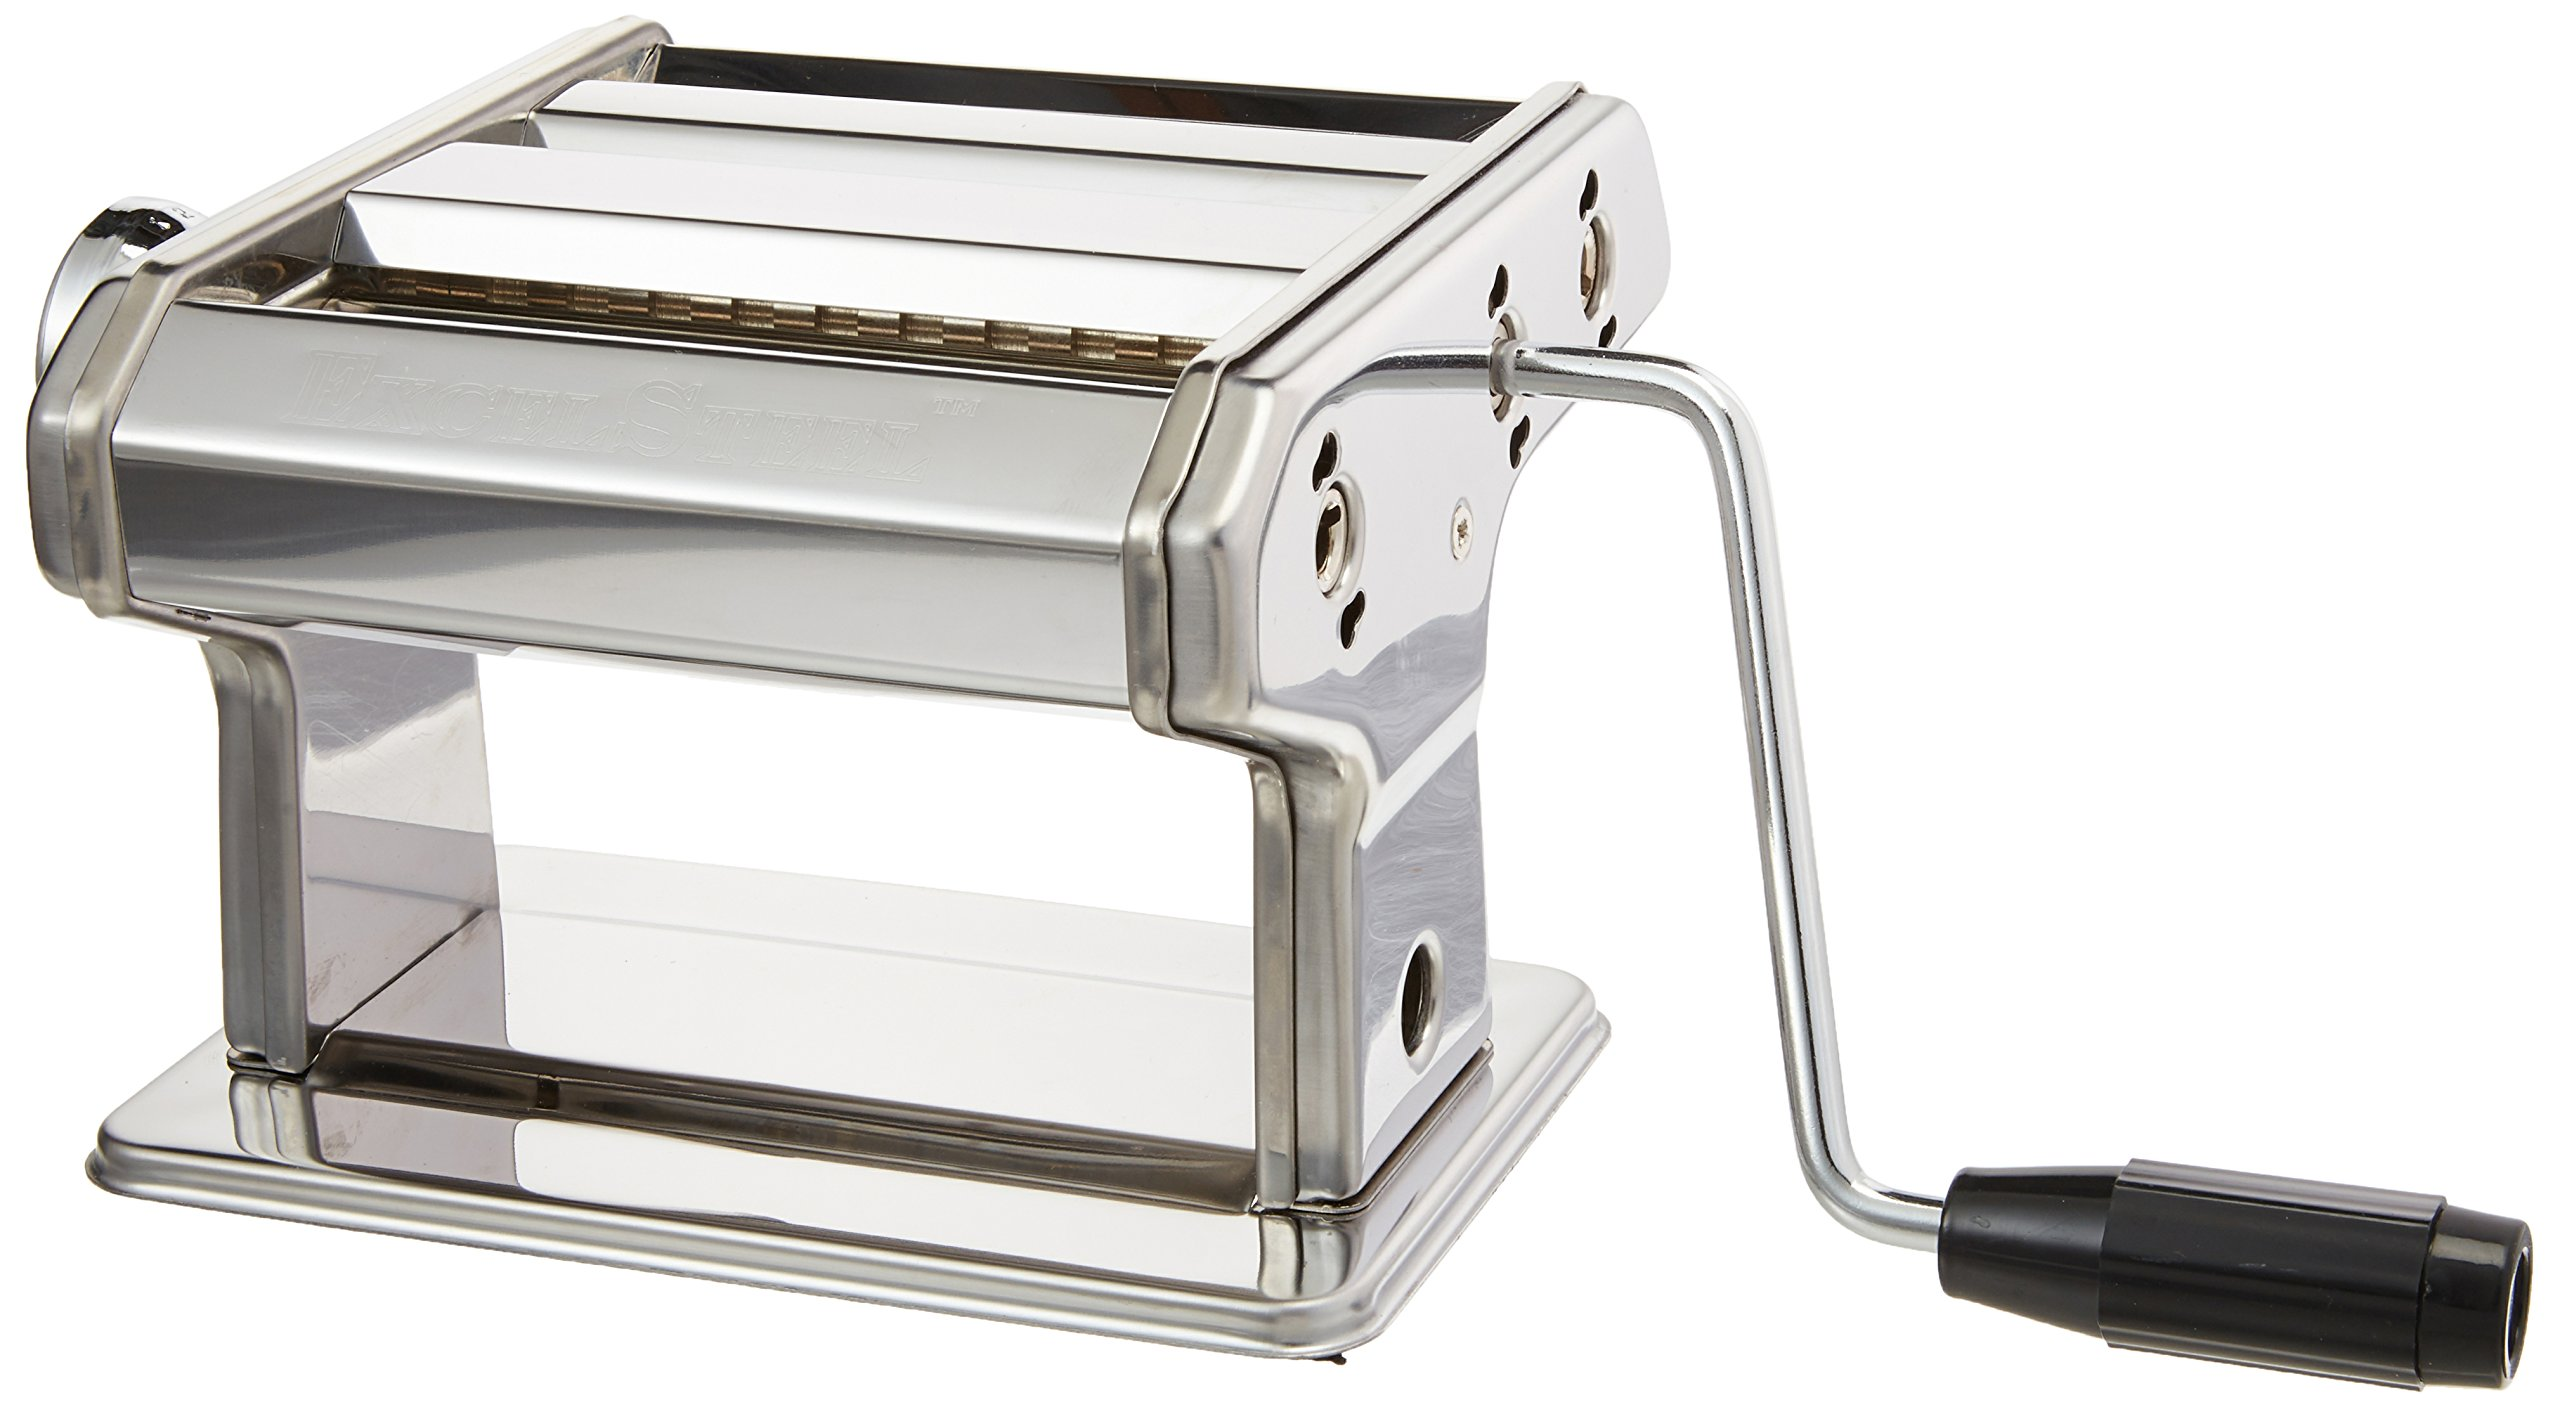 ExcelSteel Professional Stainless Steel Pasta Machine W/Adjustable Thickness Settings – Makes Perfect Spaghetti or Fettuccini, Includes Hand Crank, and Instructions